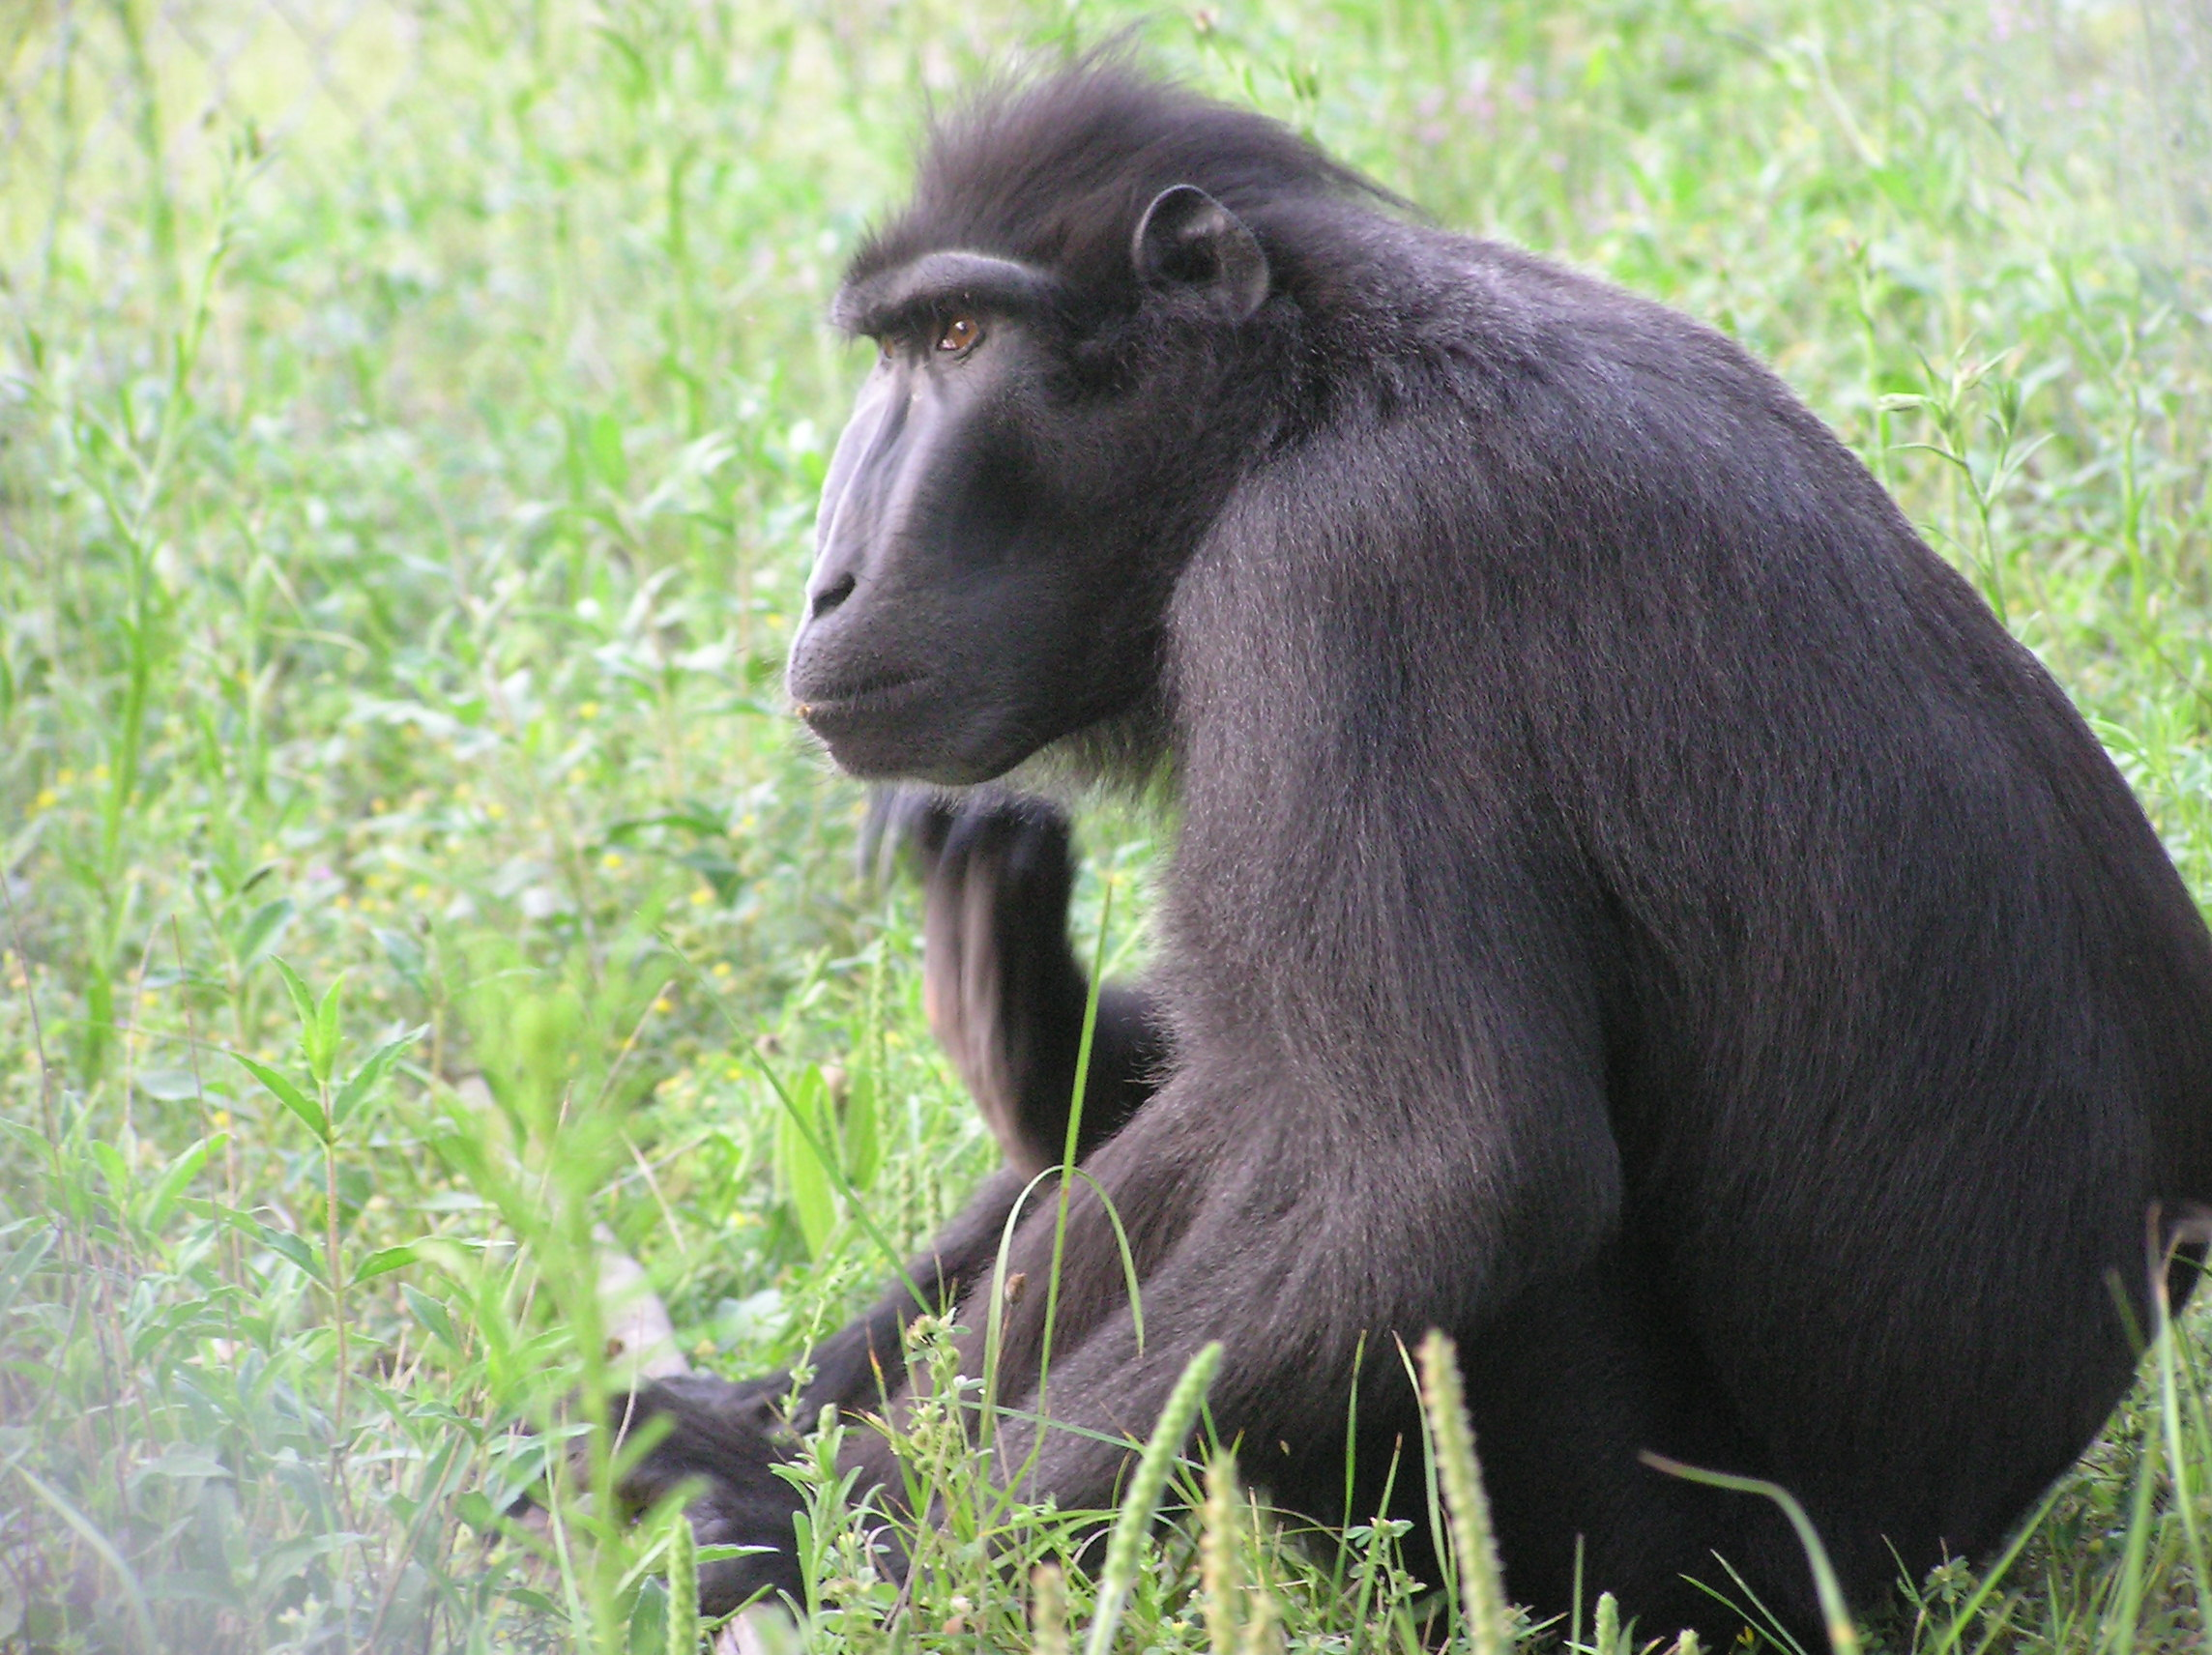 Sulawesi Crested Black Macaque Wildlife Rescue